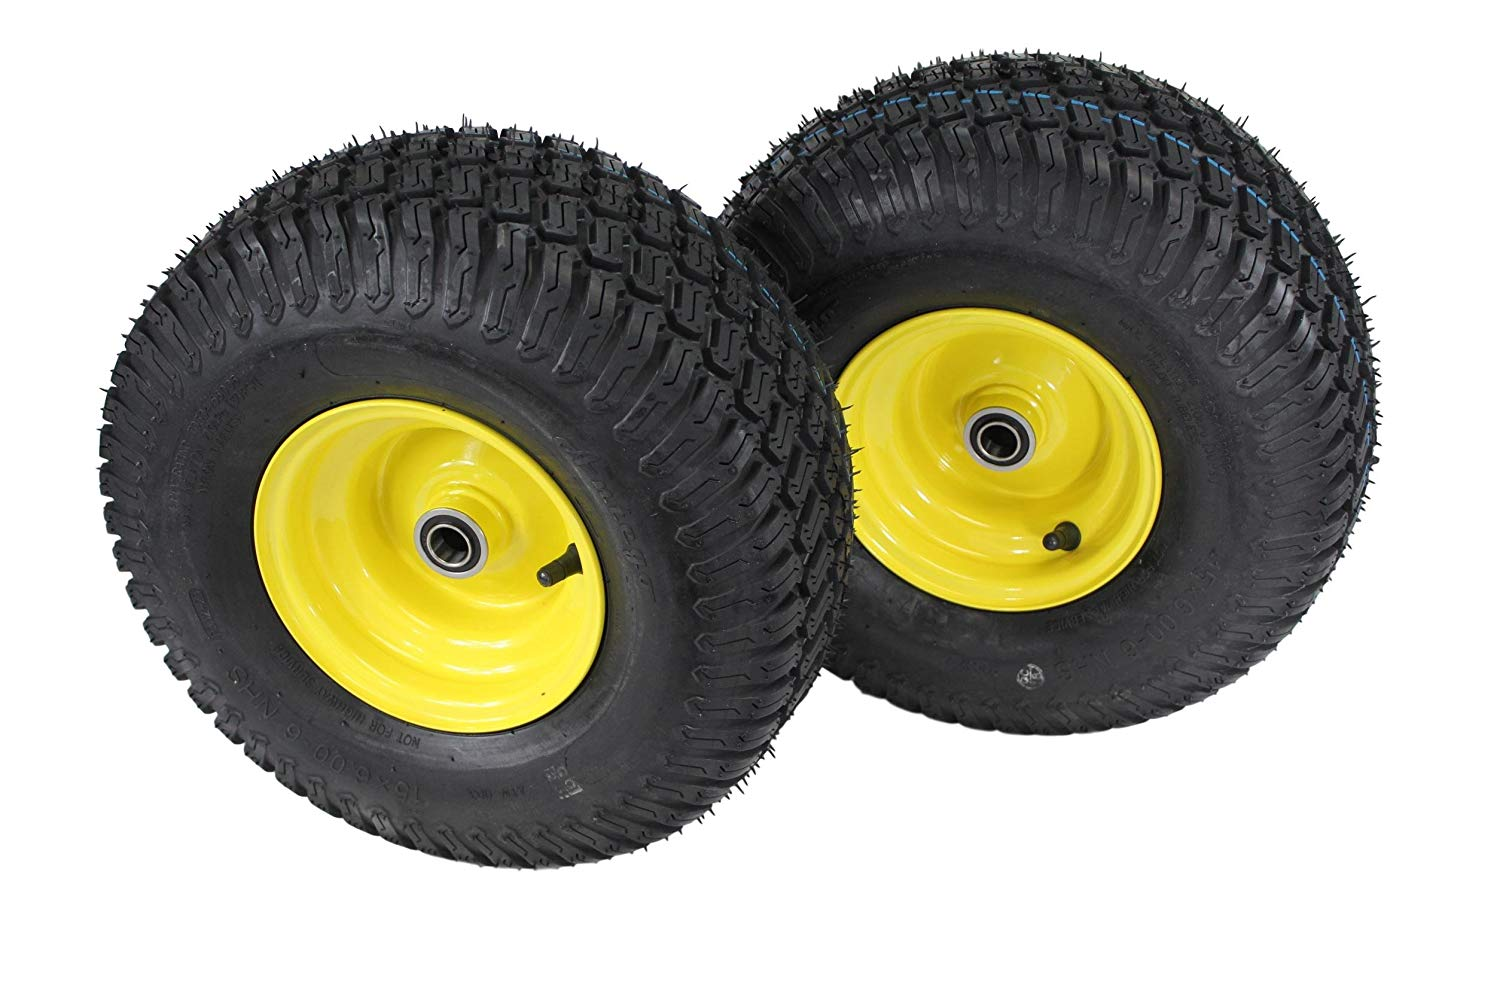 """(Set of 2) 15x6.00-6 Tires & Wheels 4 Ply for Lawn & Garden Mower Turf Tires .75"""" Bearing ATW-003"""